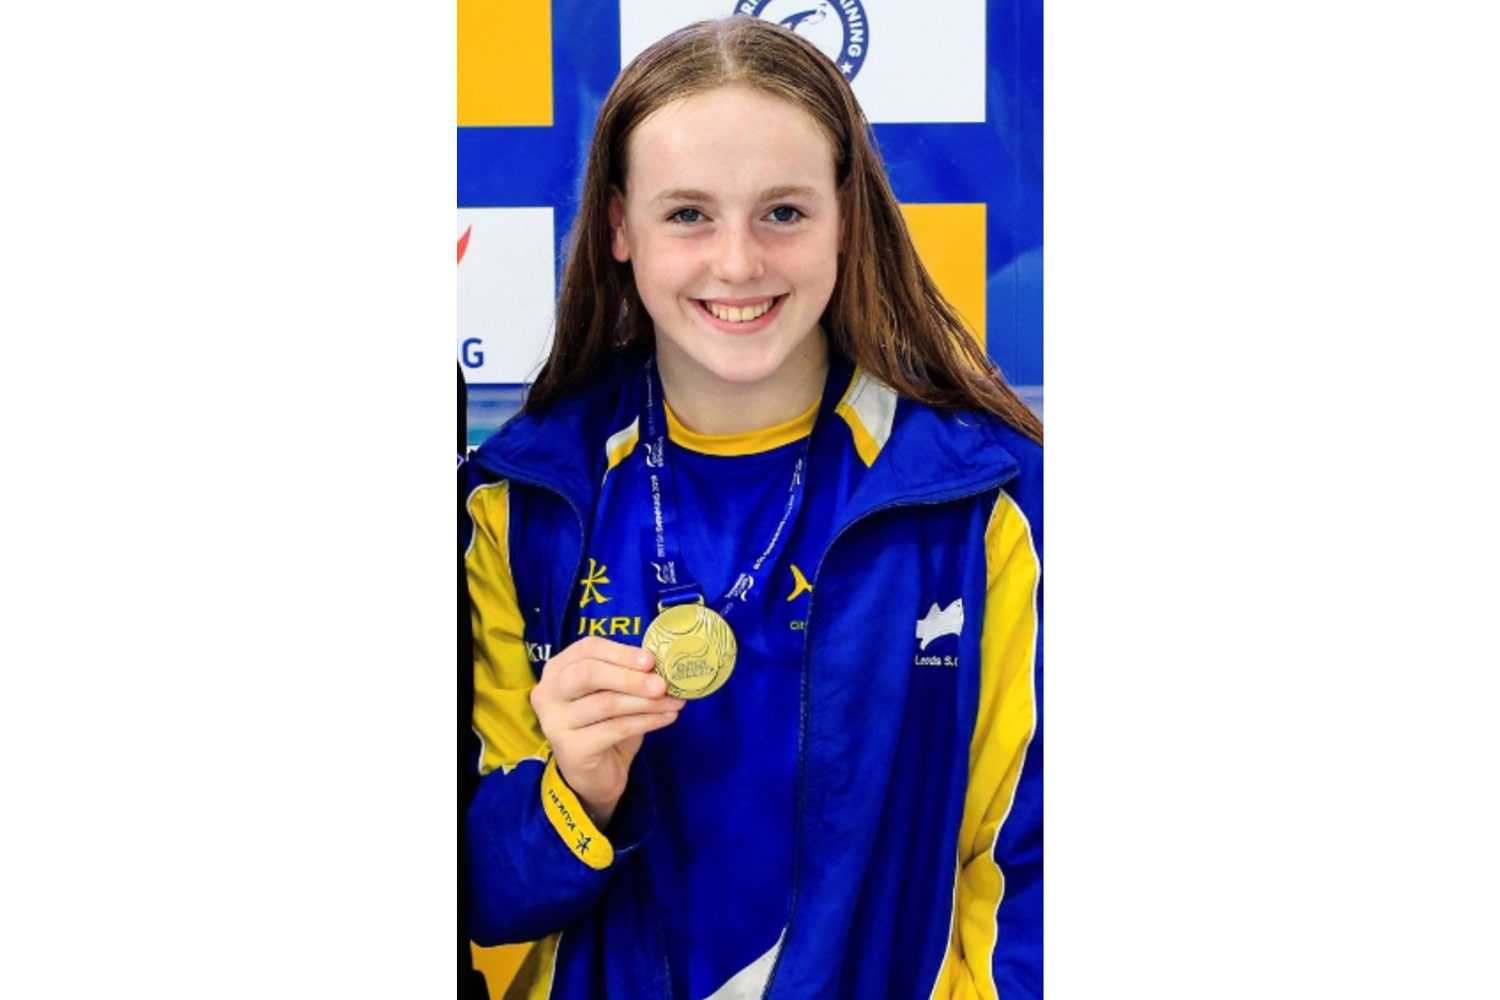 Photo: Izzy Goodwin with one of her medals